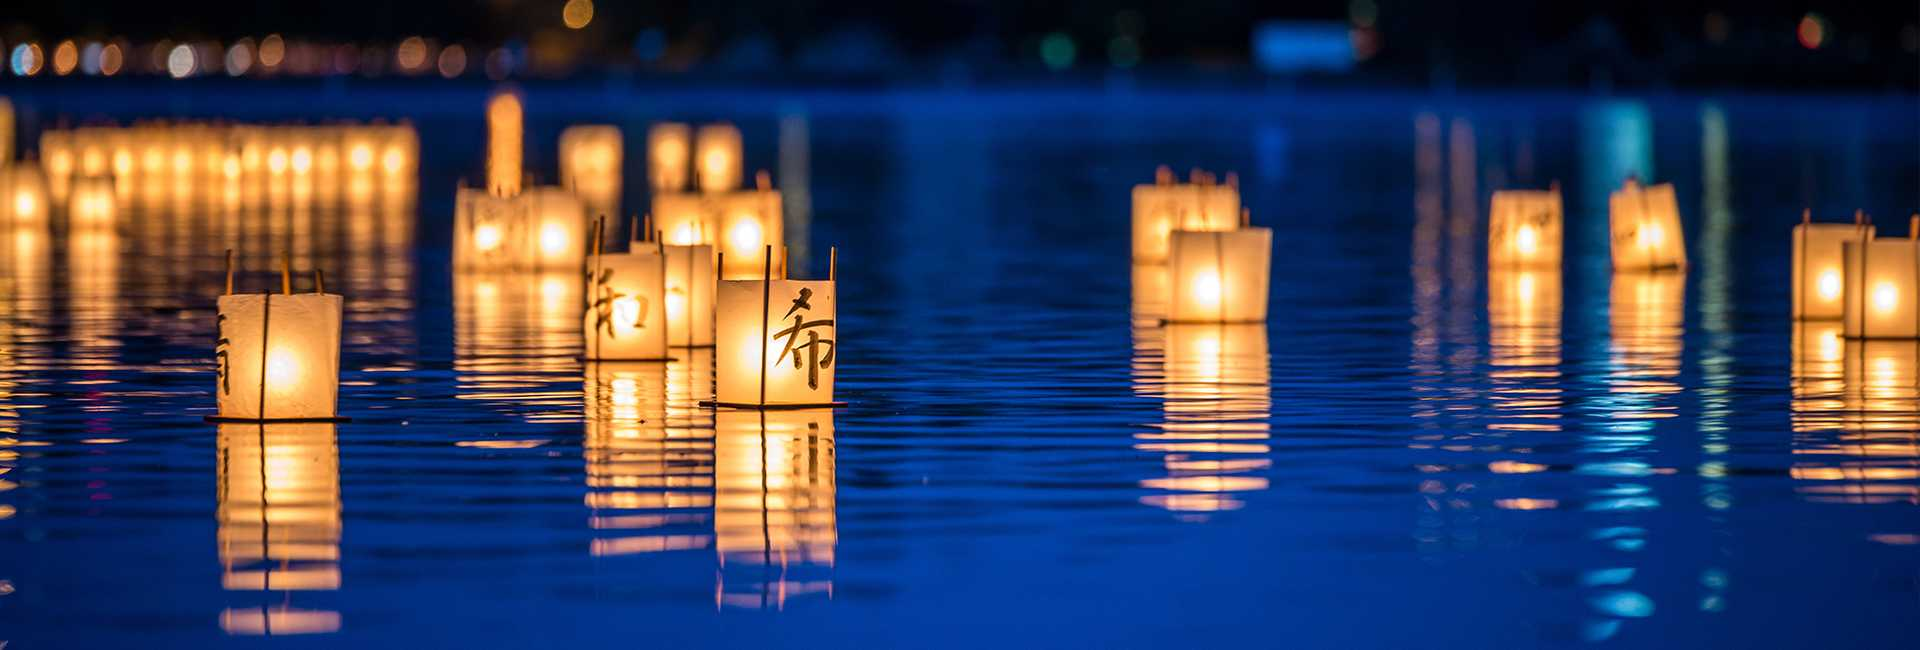 lanterns in Hiroshima